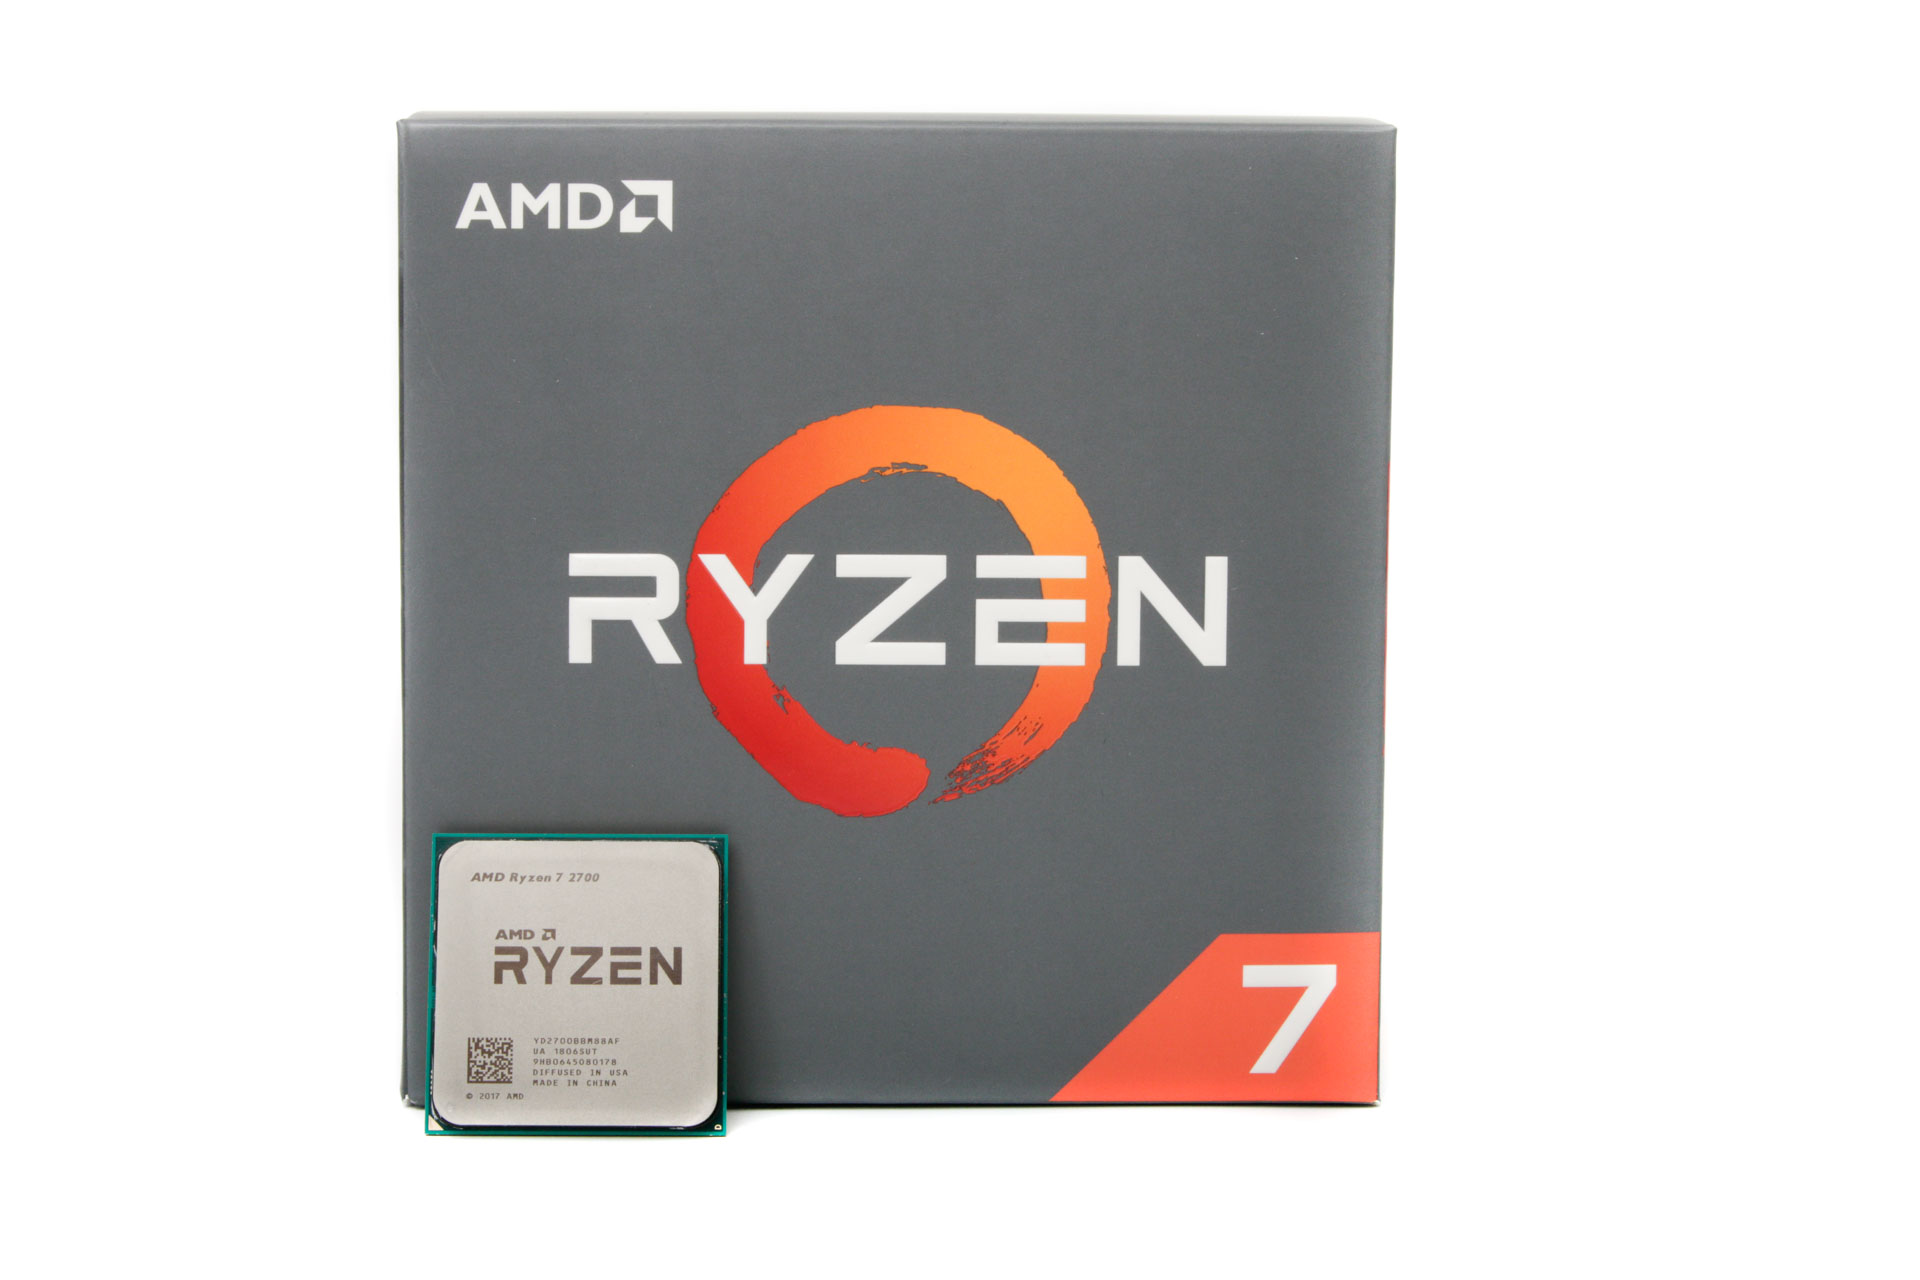 Enter the Ryzen 7 2700 and Ryzen 5 2600 - the former we're looking at today  and the latter we'll be putting through its paces very soon.